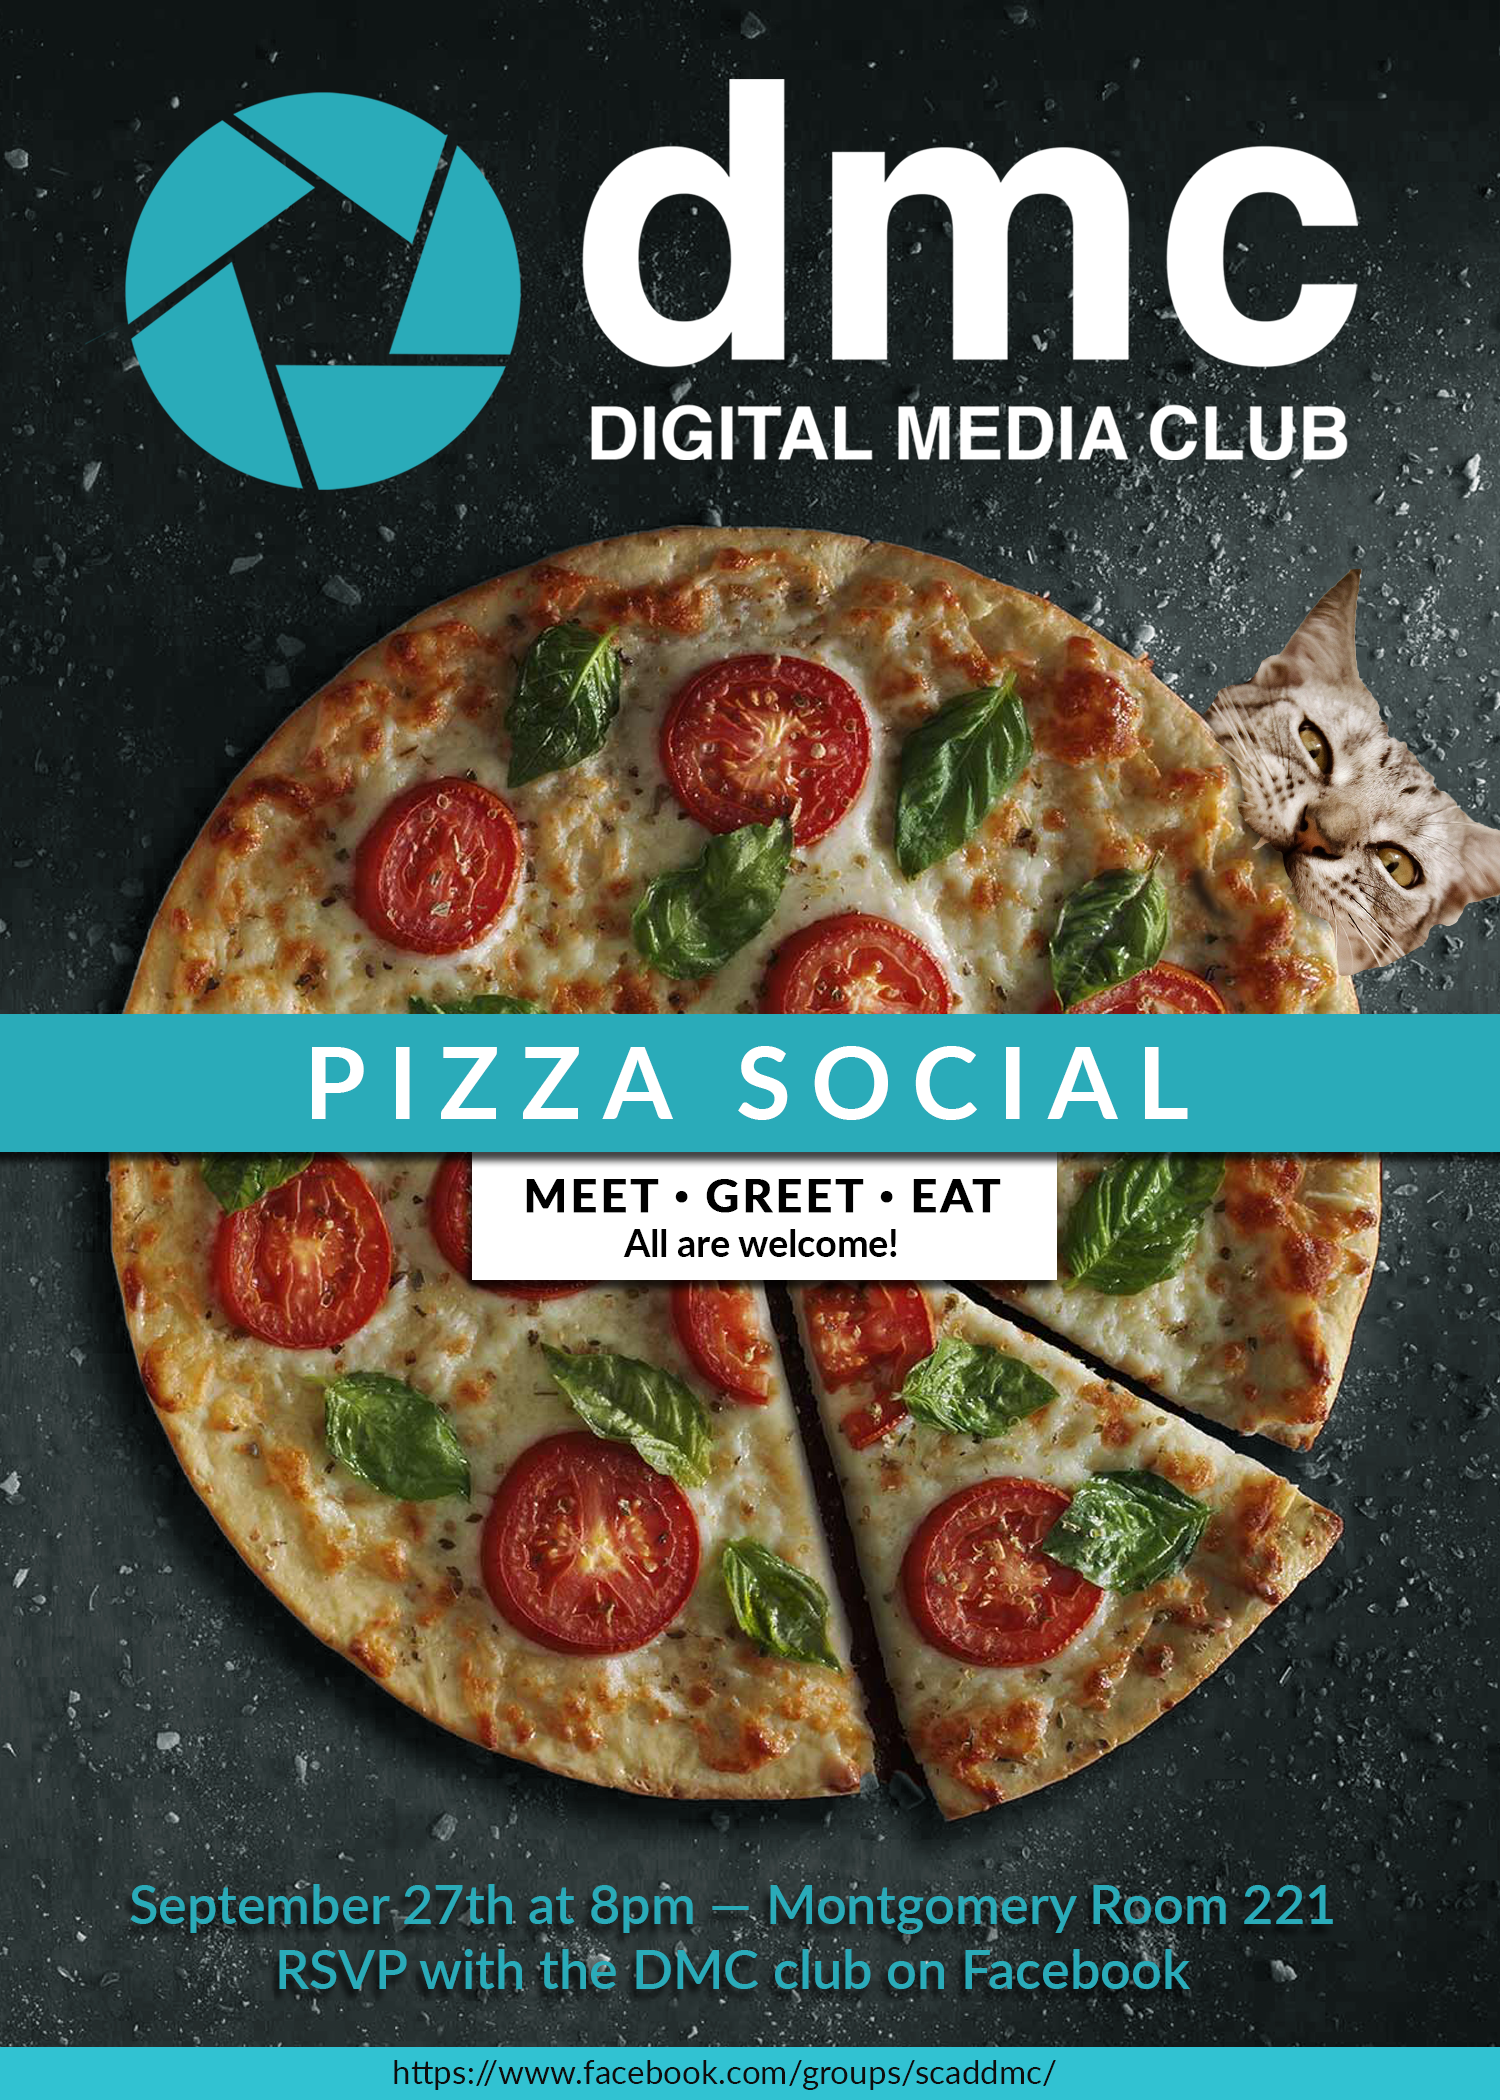 Digital Media Club Pizza Social